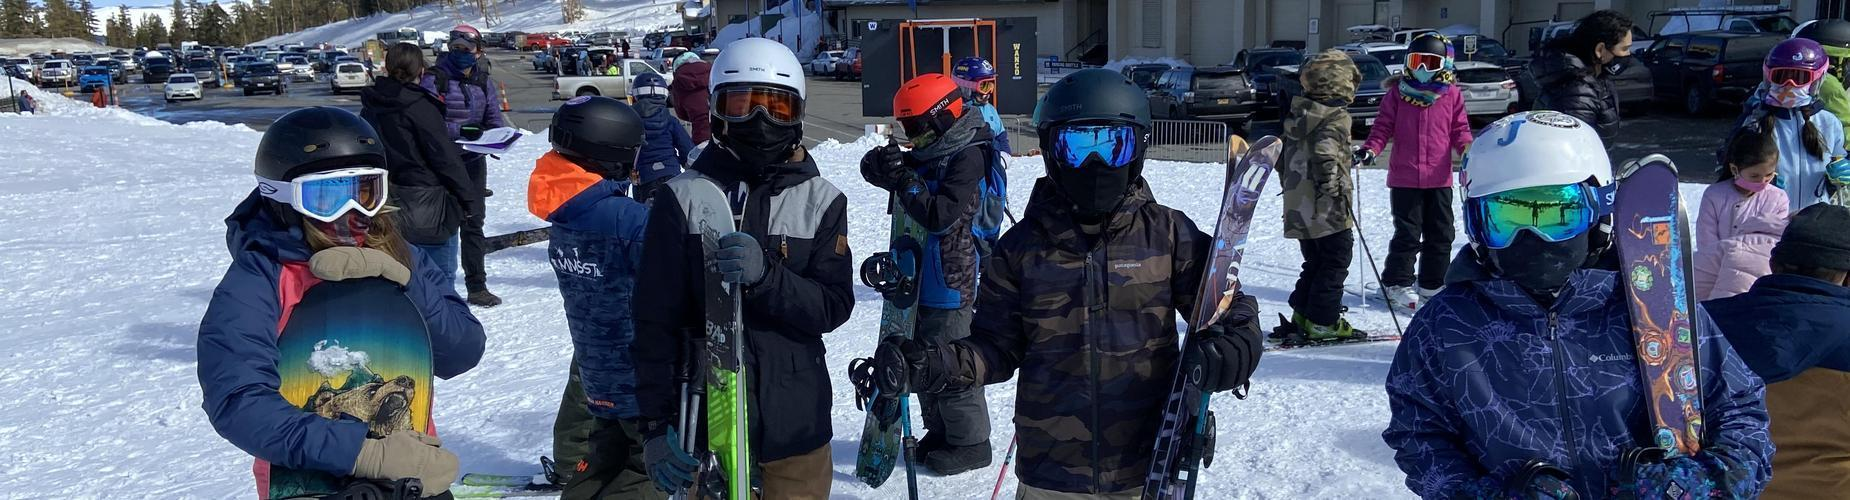 Mes ski pe, students with helmets and googles on the ski slope holding their skis and snowboards.